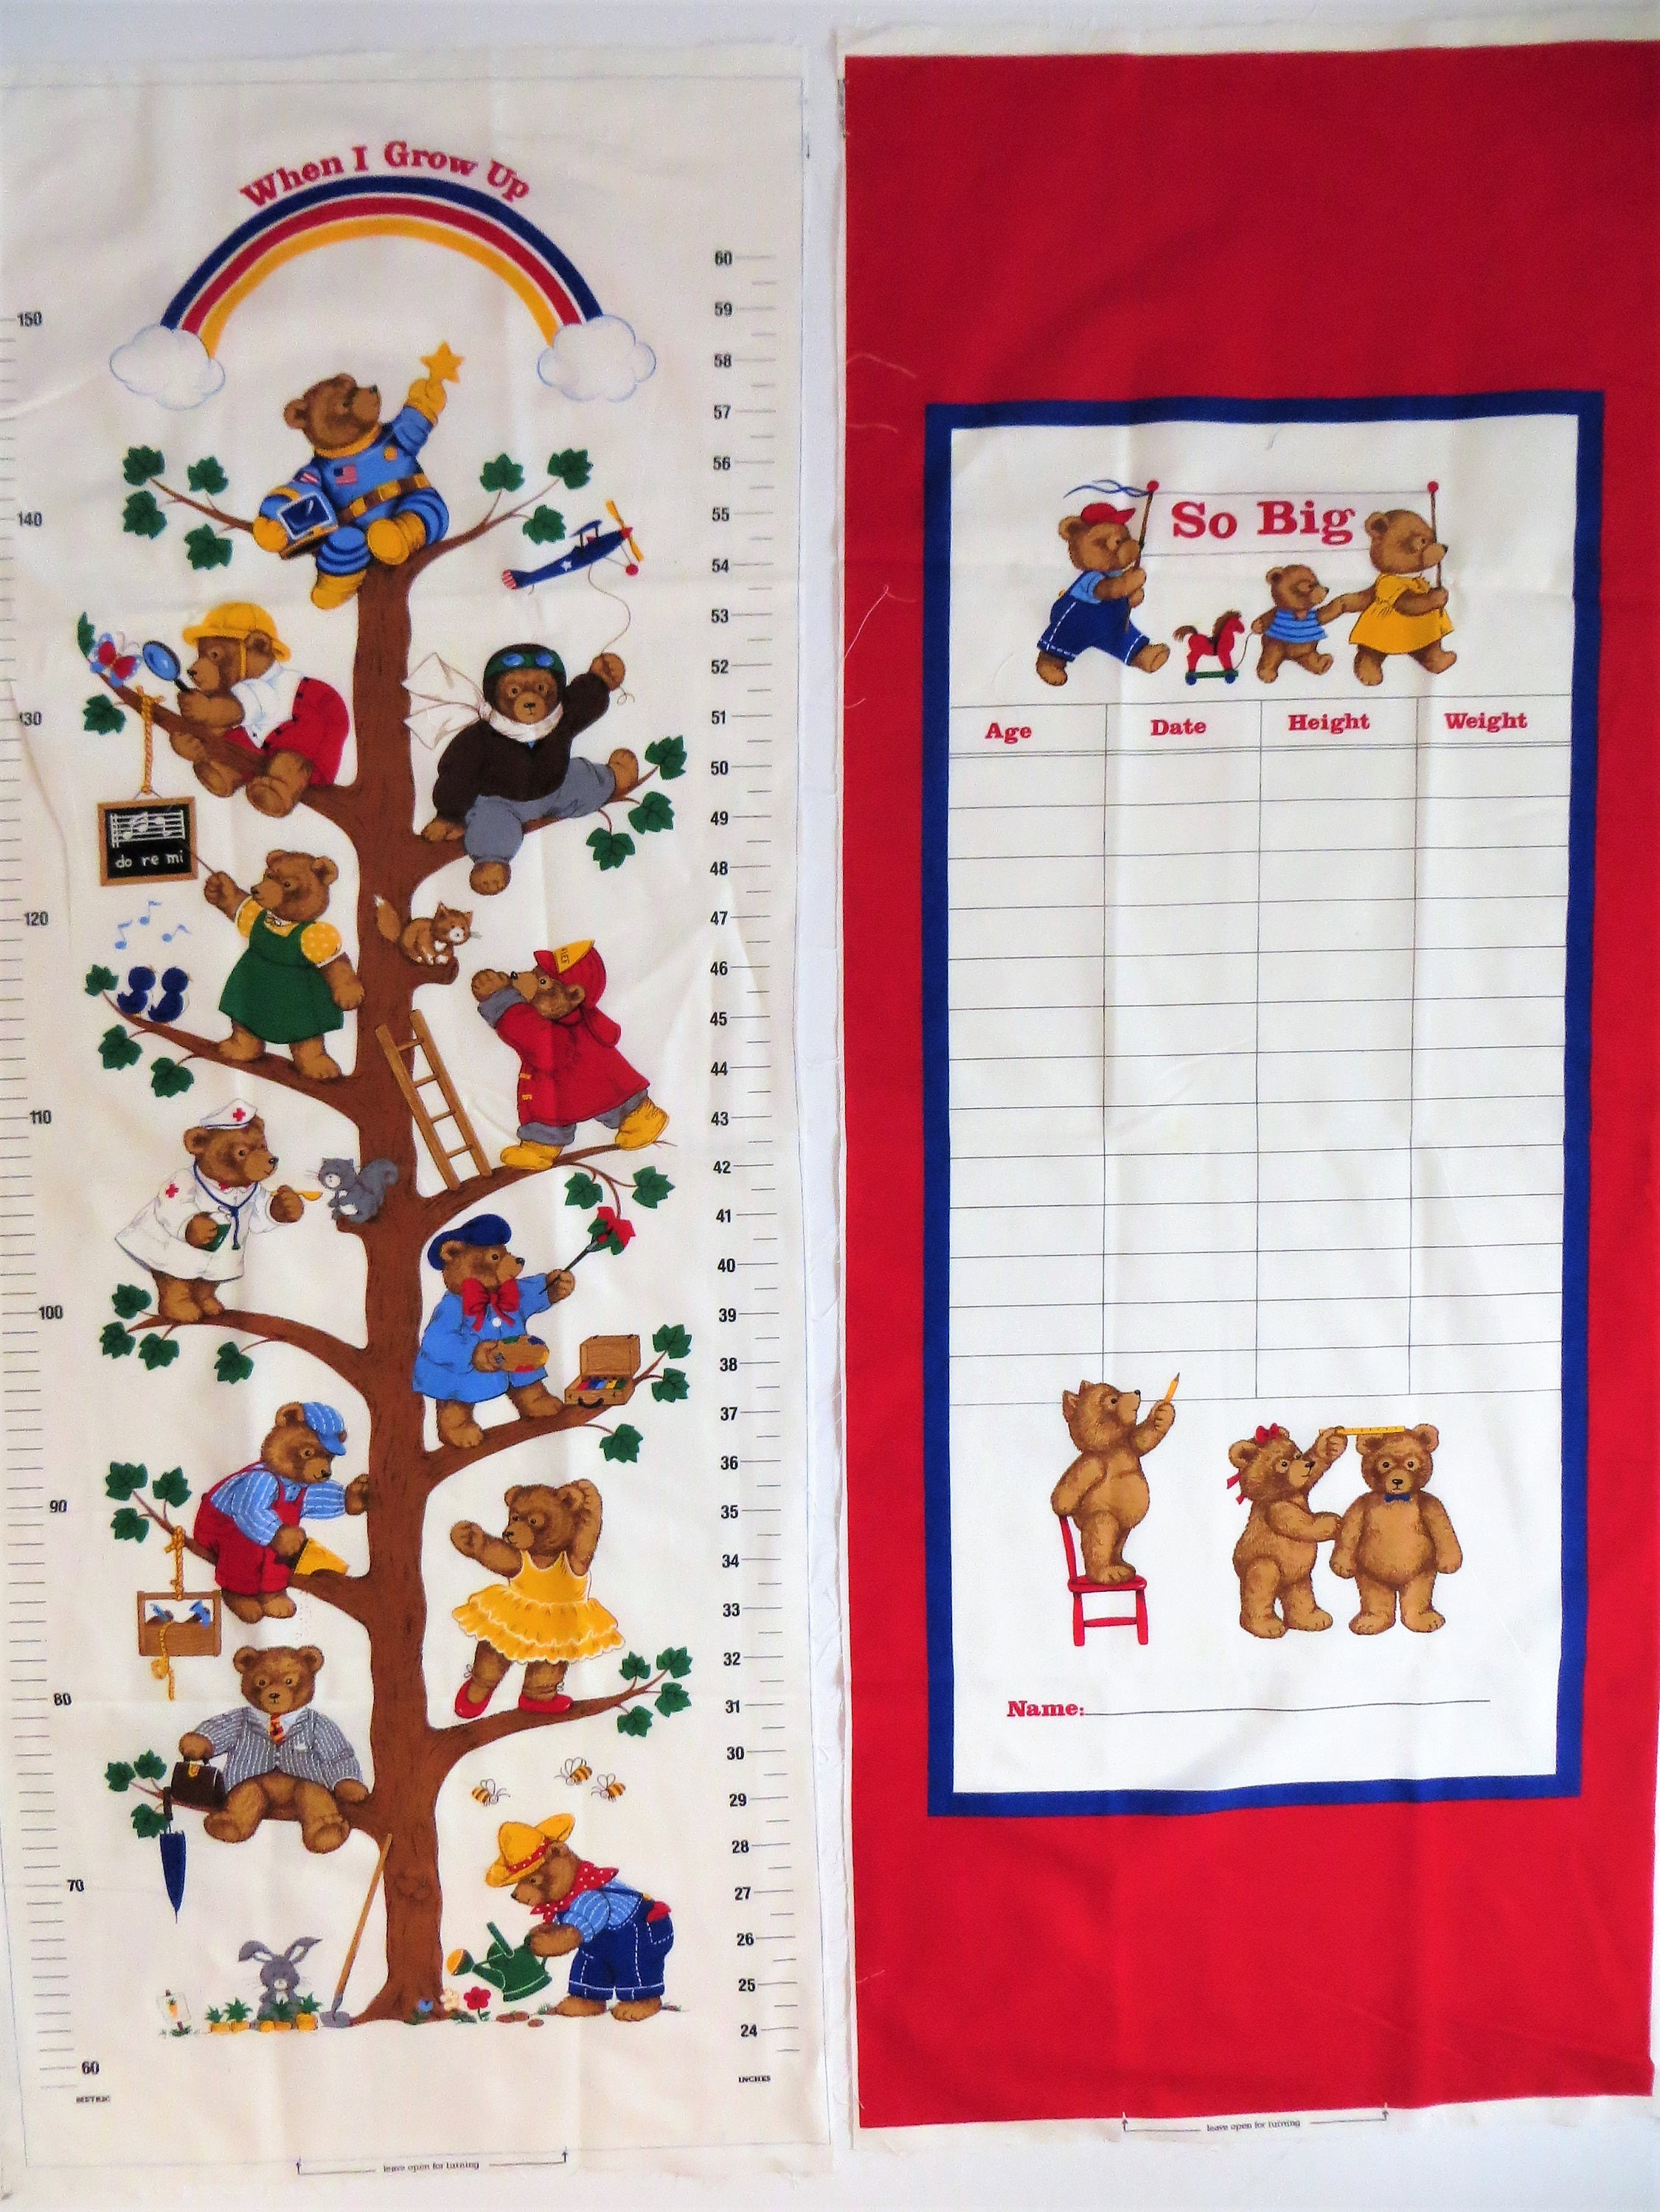 Teddy bear growth chart fabric when i grow up childs growth chart get shipping estimate geenschuldenfo Images